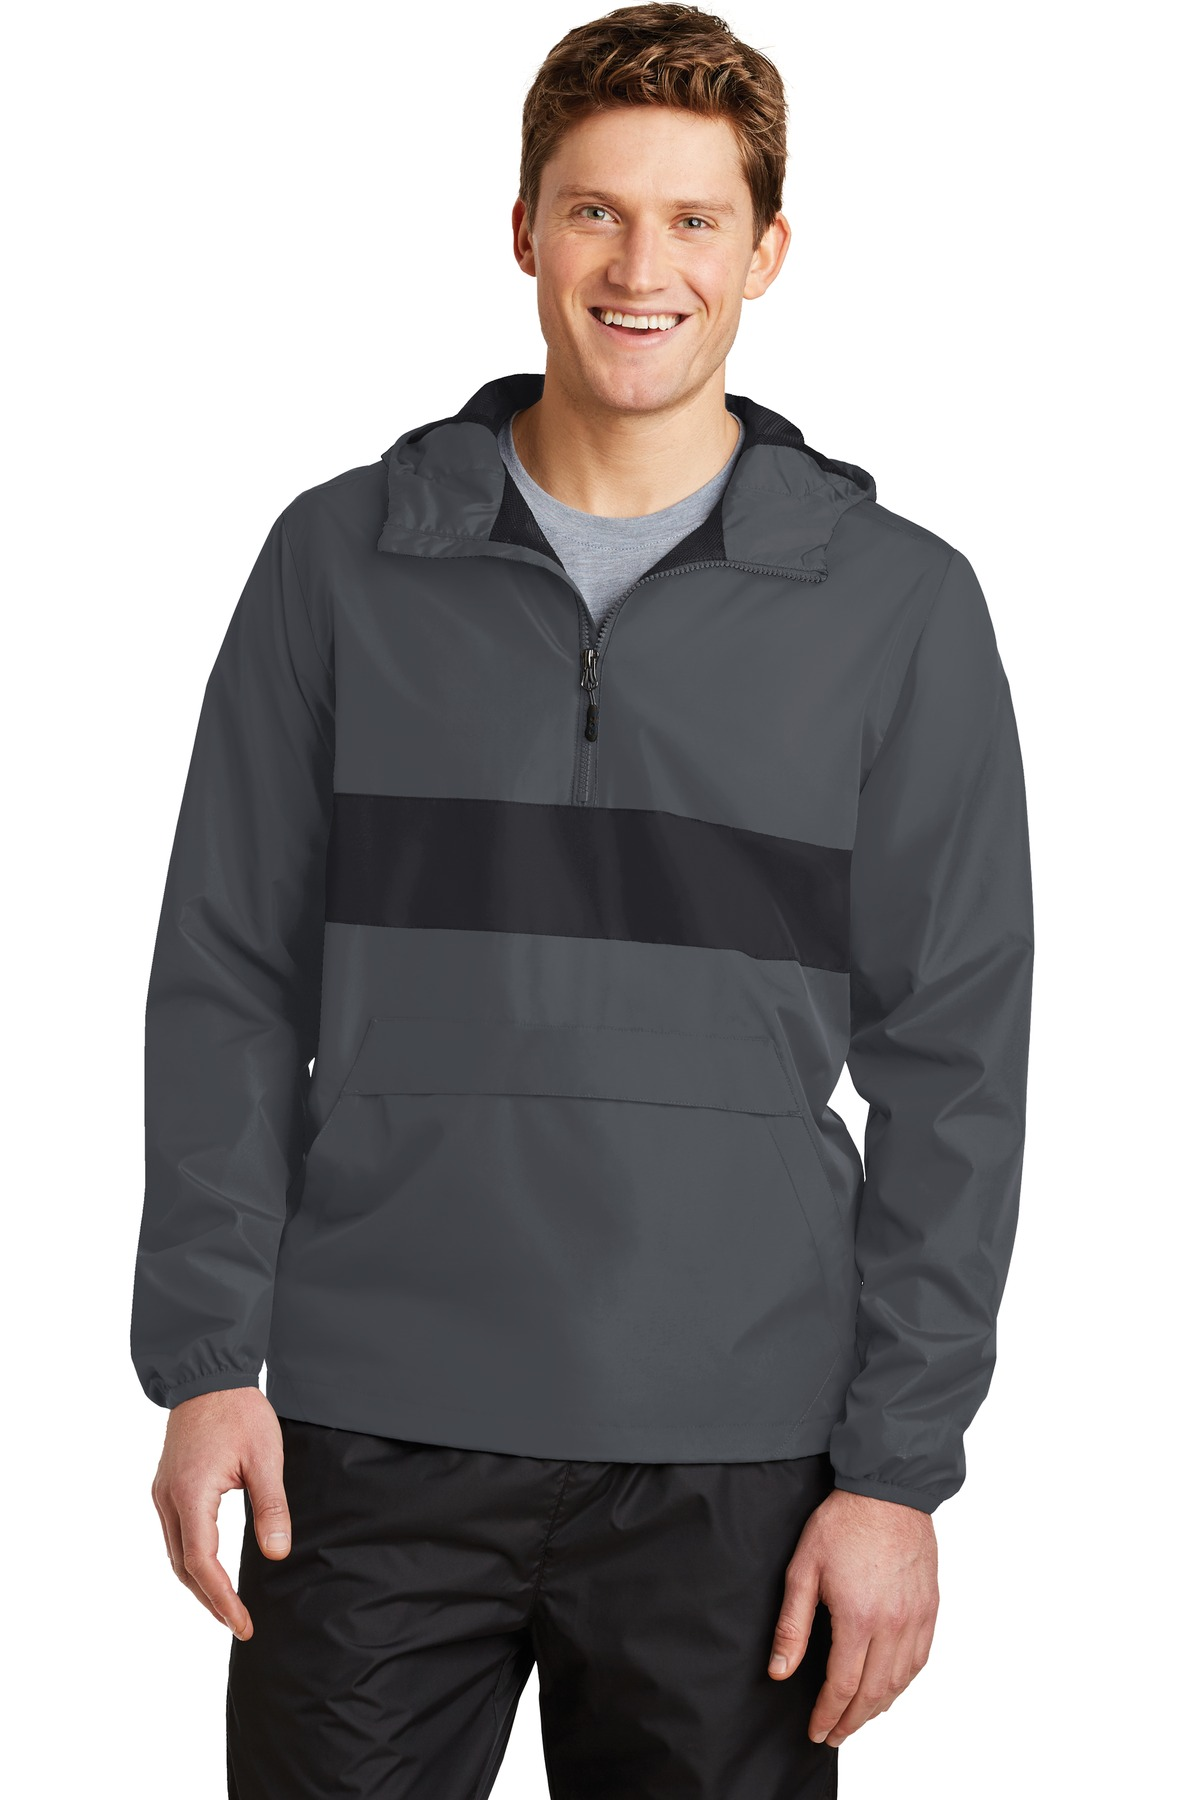 Sport-Tek ®  Zipped Pocket Anorak. JST65 - Graphite Grey/ Black